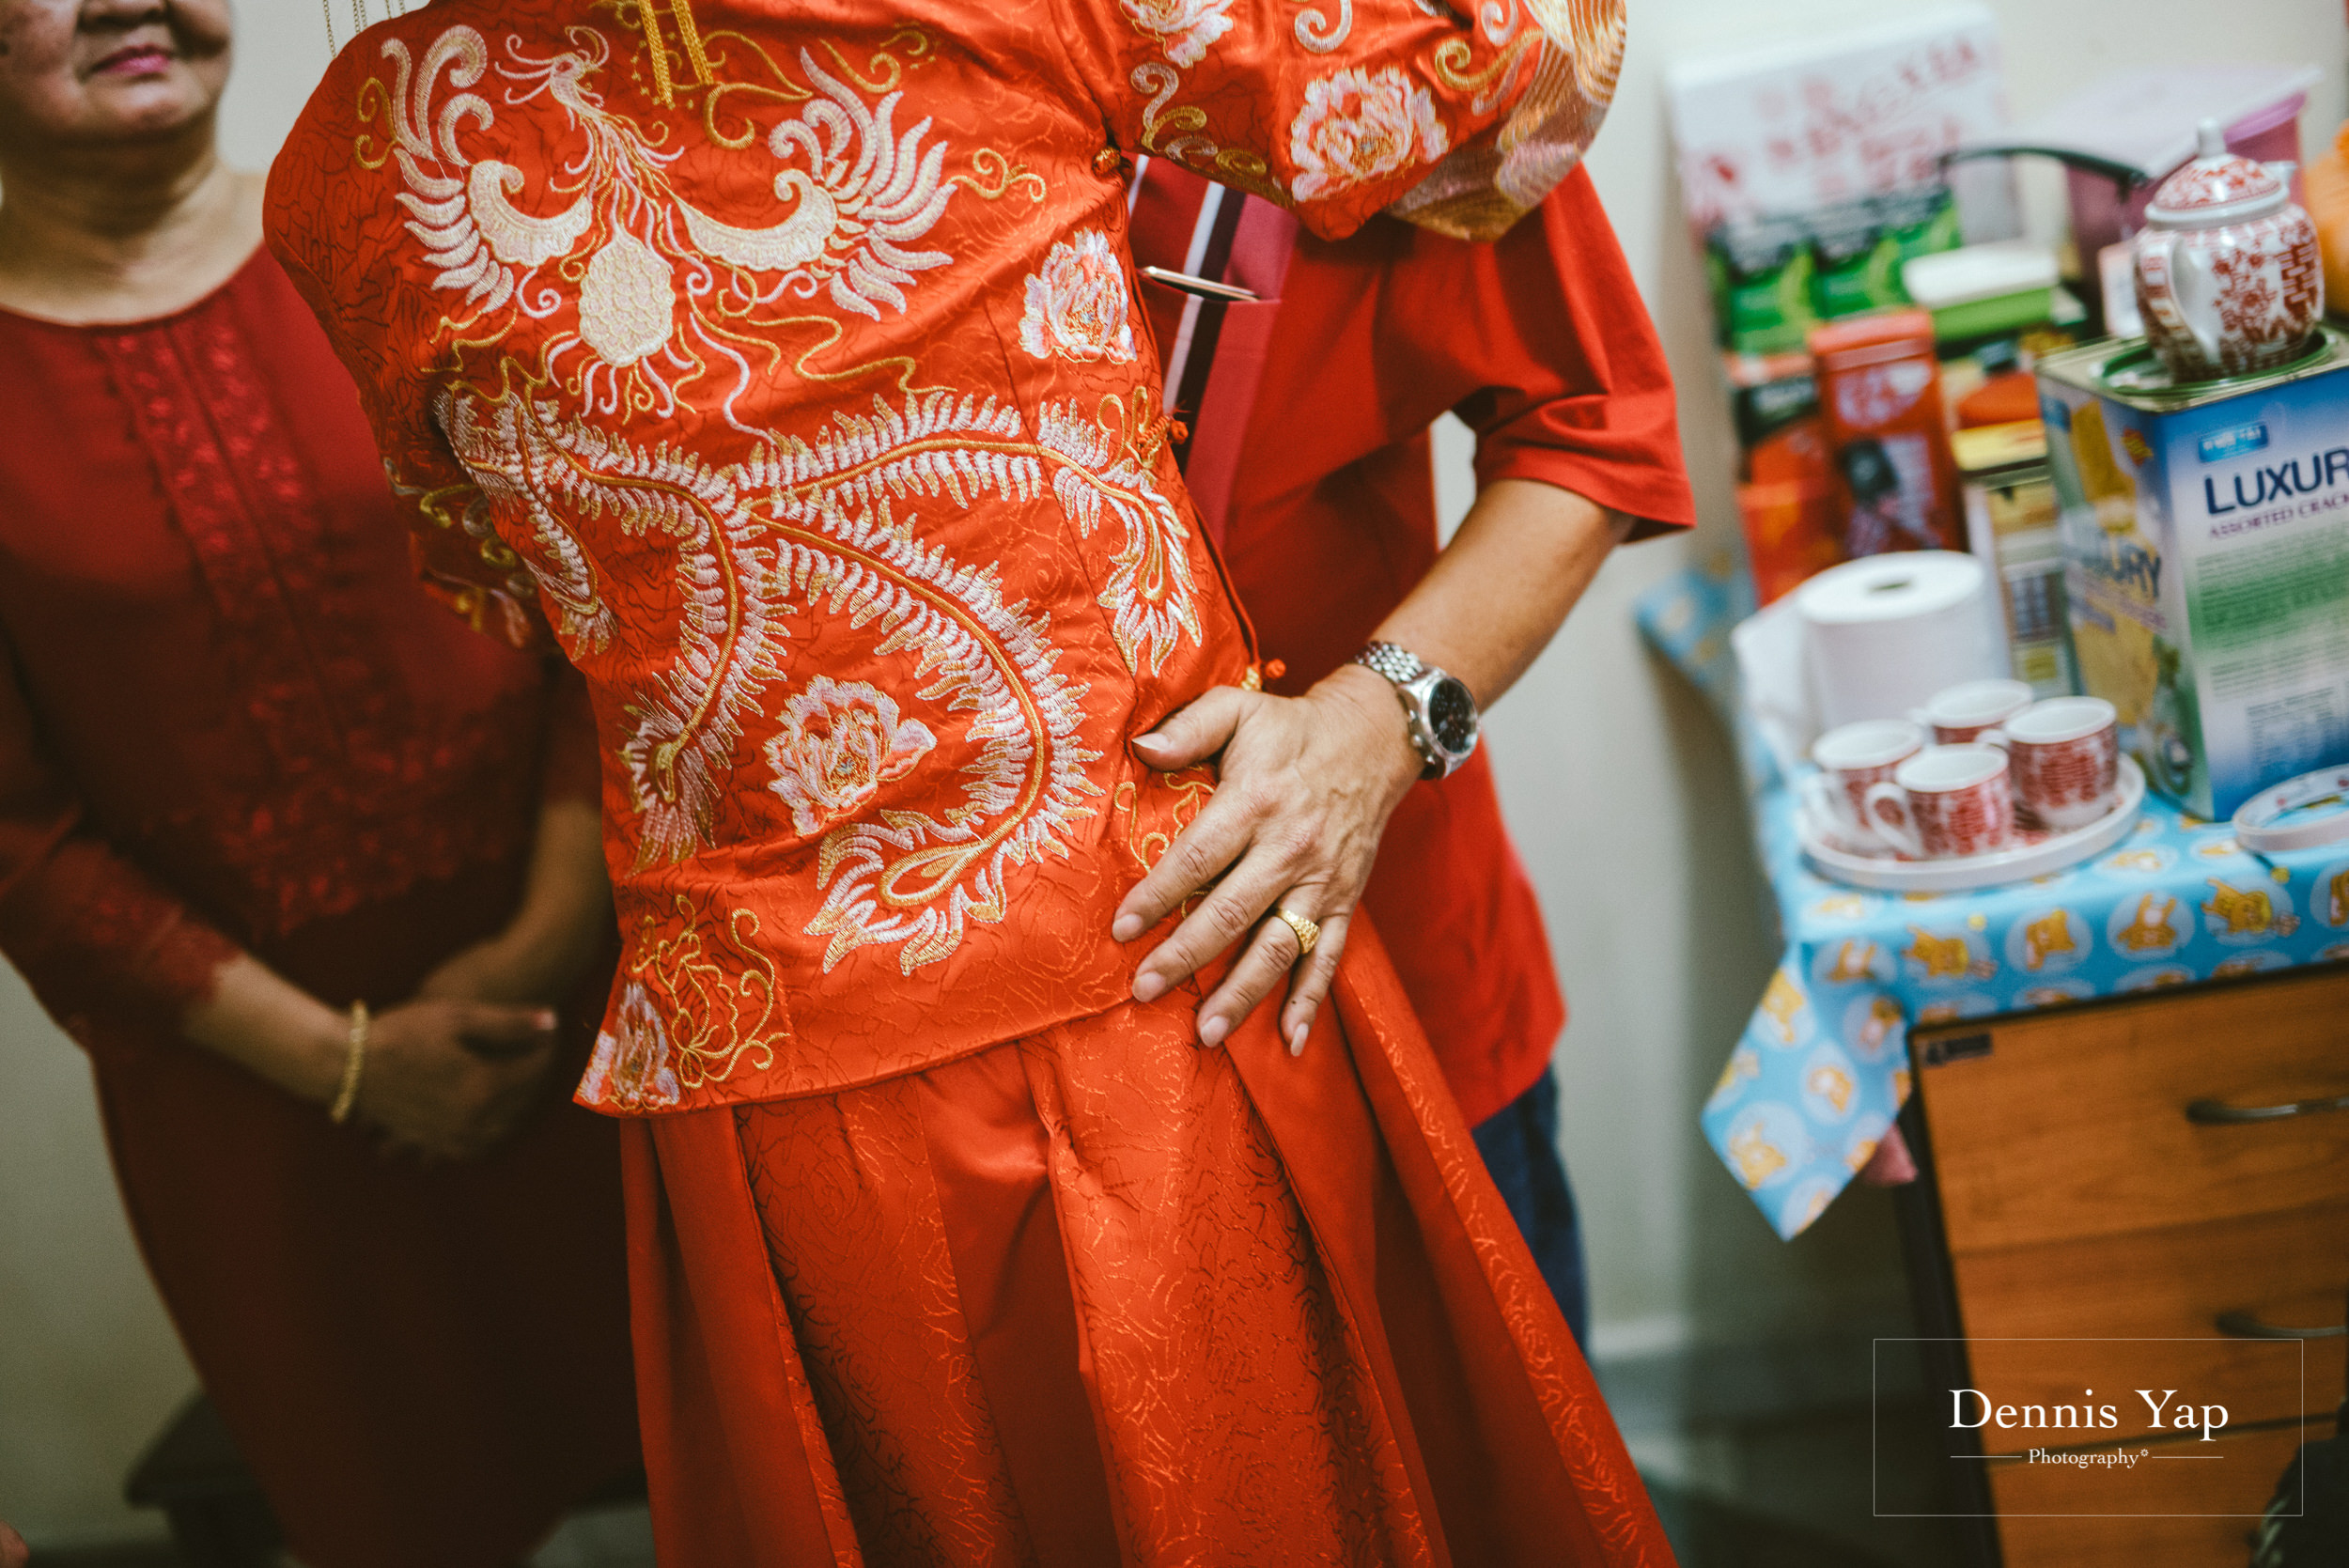 jimmy mellissa wedding day traditional chinese kua dennis yap photography-20.jpg